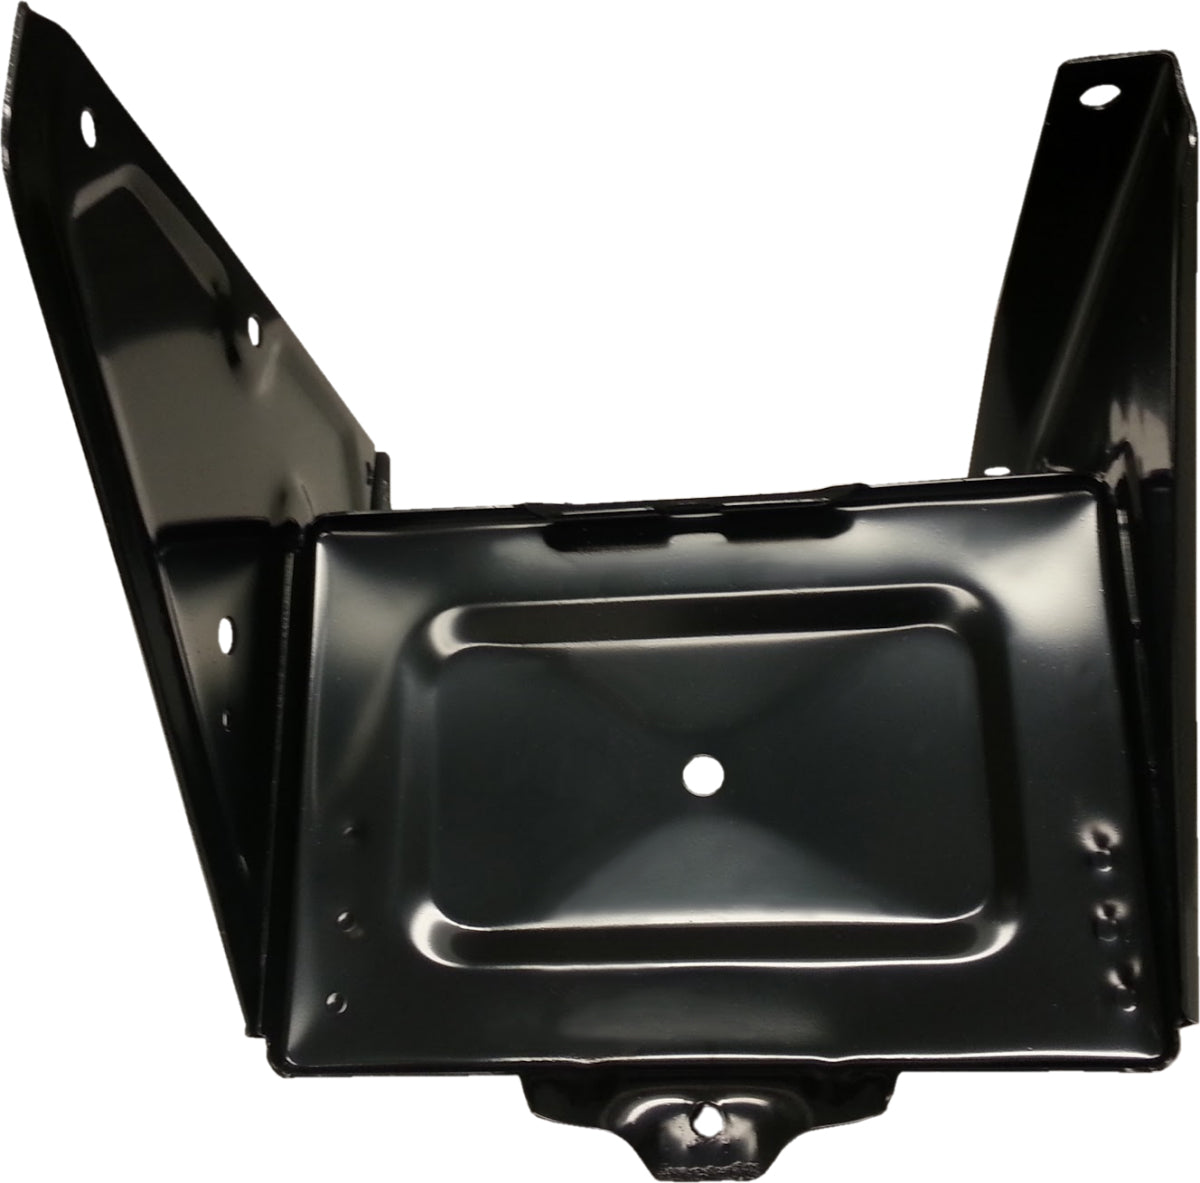 67-72 Chevy//GMC C10 Truck Battery Tray Box /& Hold Down with A//C *Premium Grade*